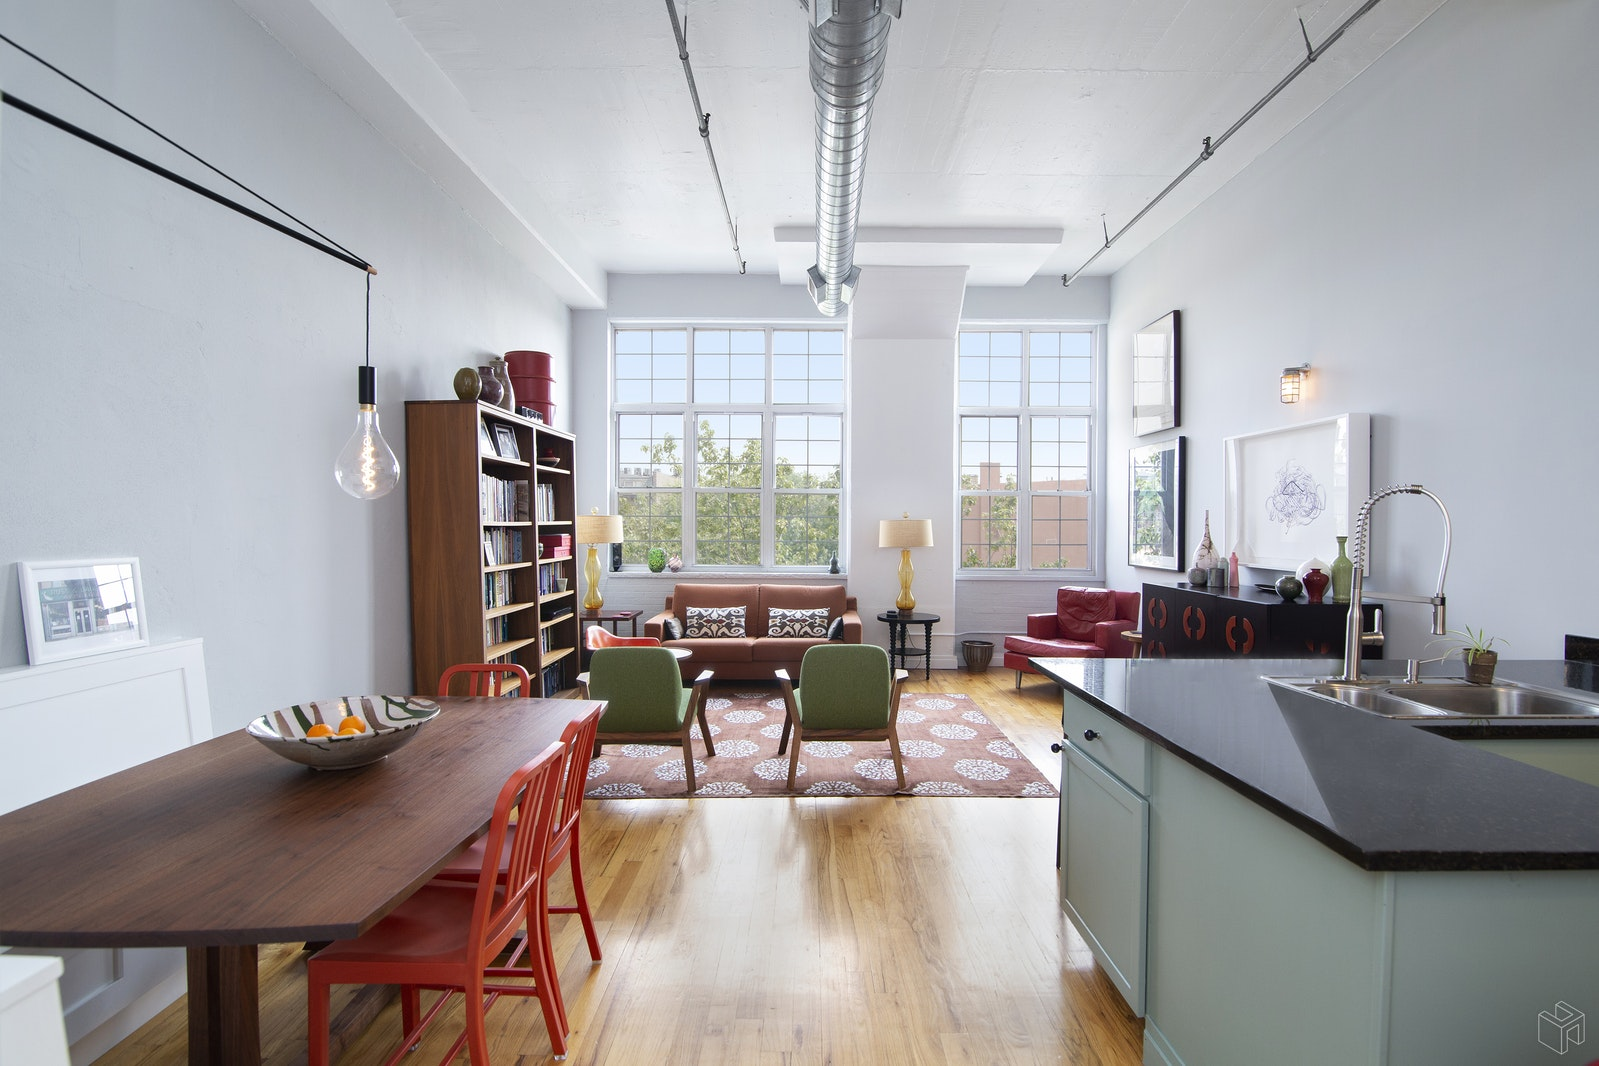 689 Myrtle Avenue 2a, Clinton Hill, Brooklyn, NY, 11205, $798,000, Sold Property, Halstead Real Estate, Photo 2